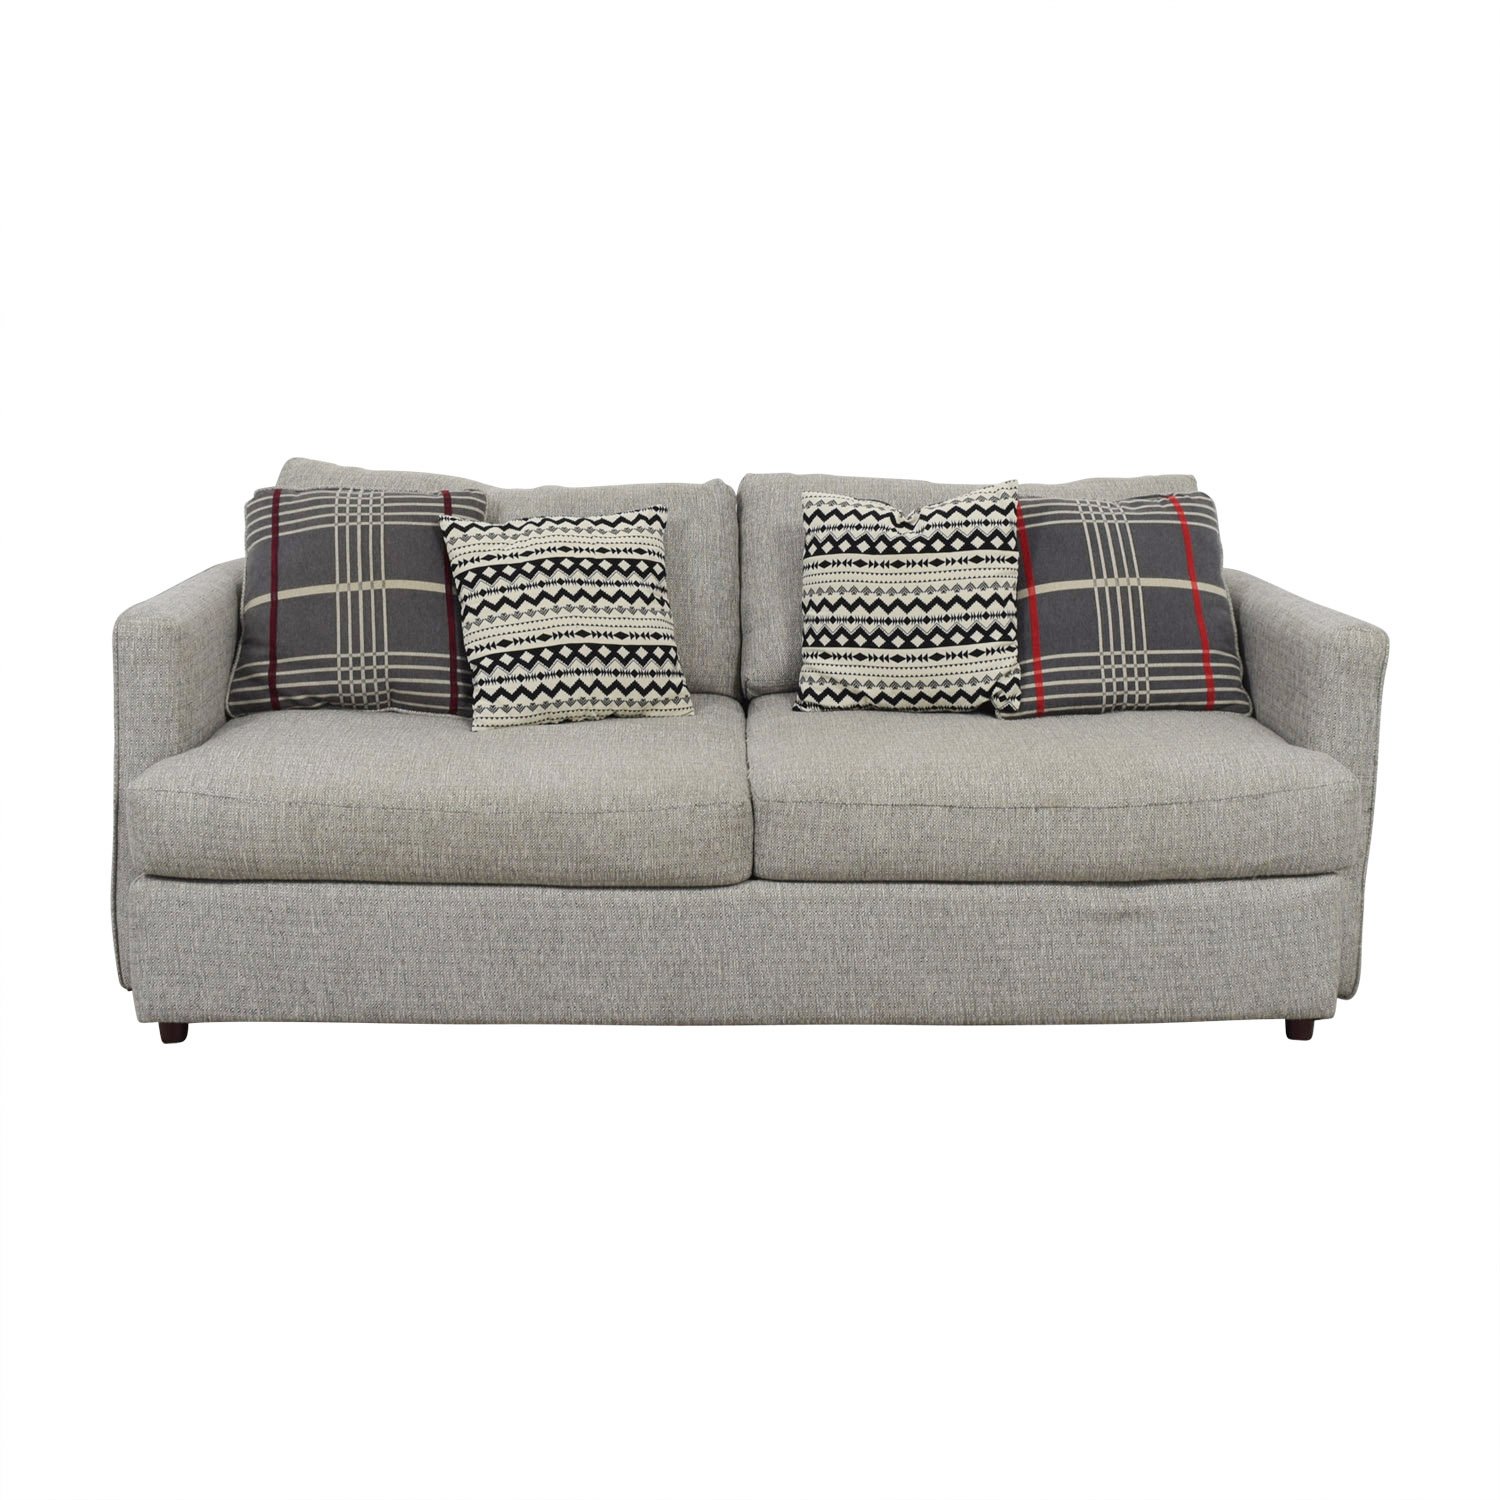 American Furniture American Furniture Grey Two-Cushion Tweed Sofa used